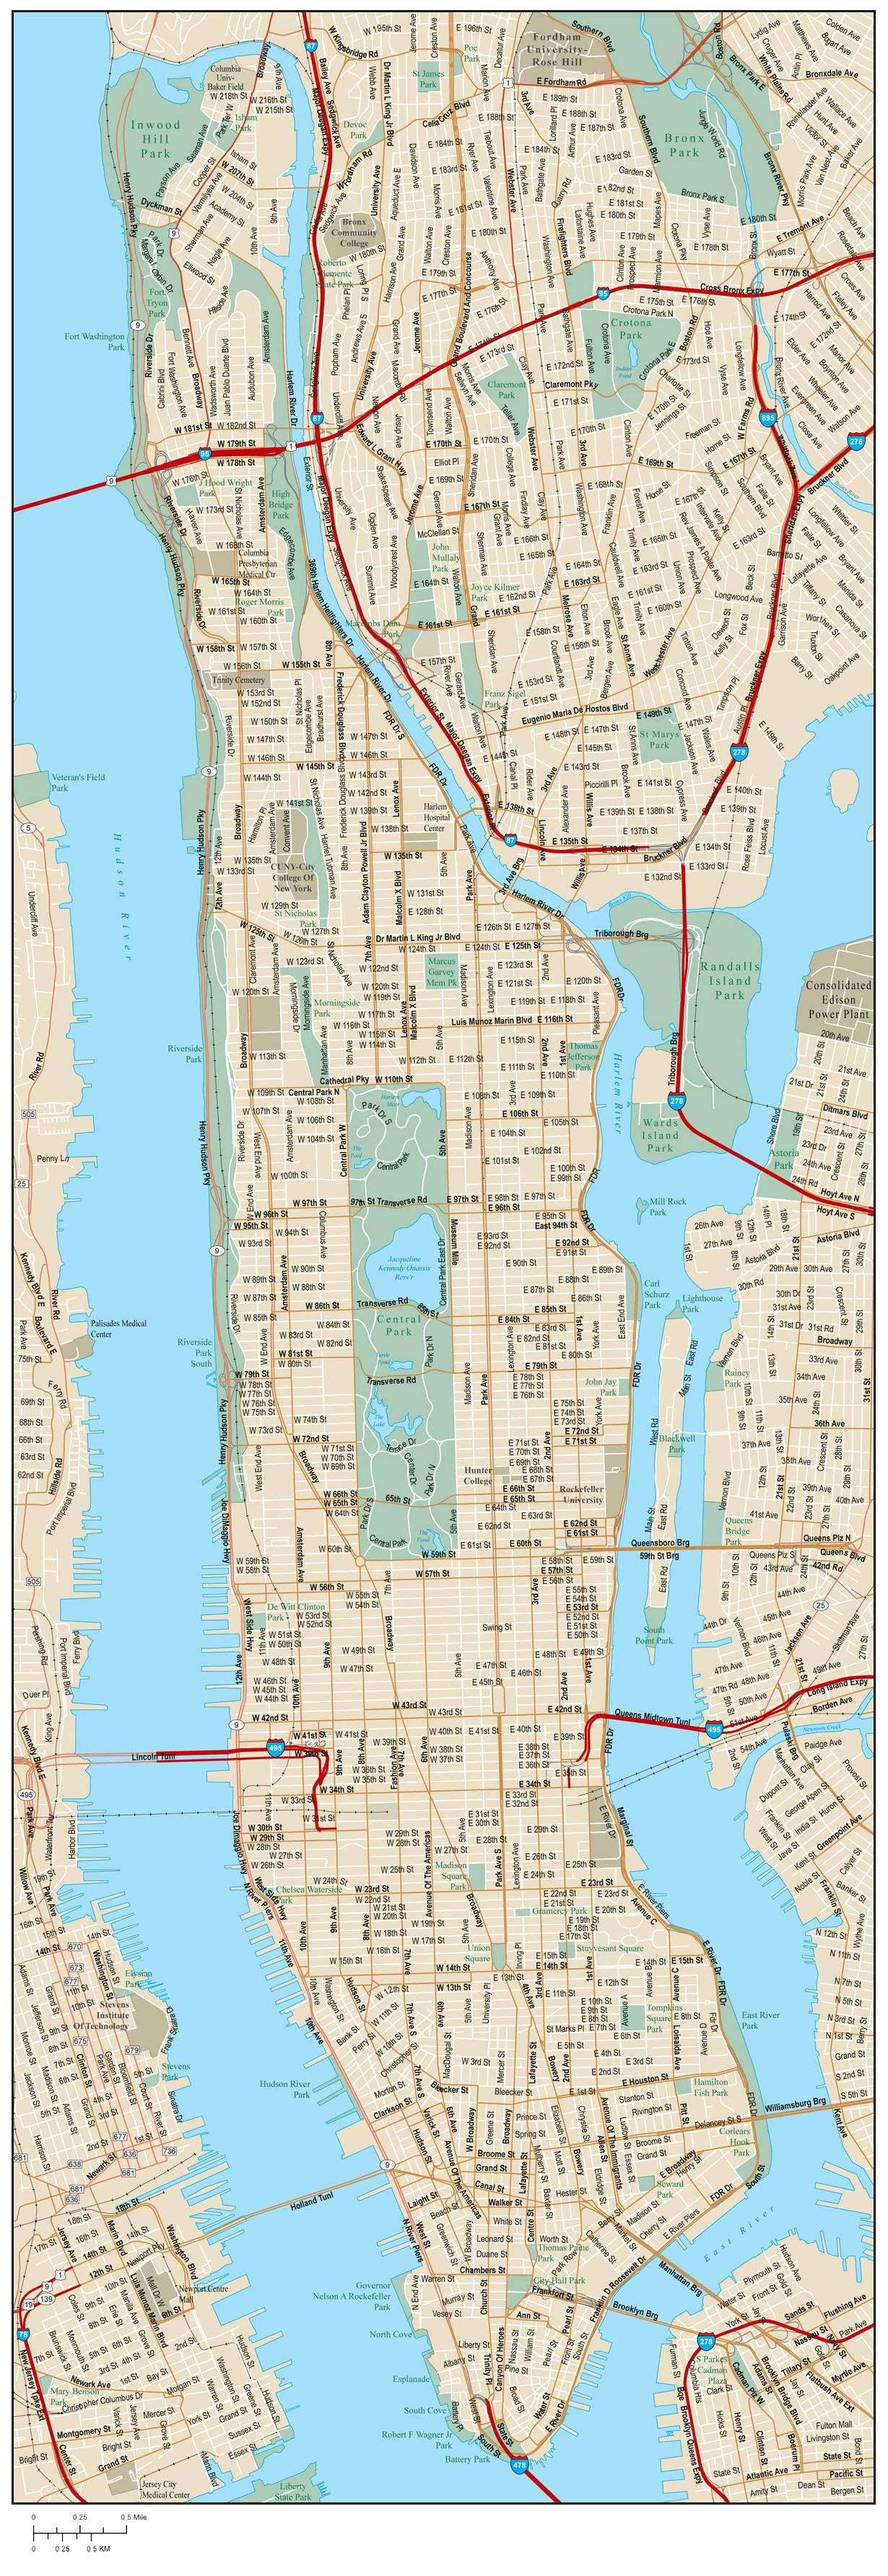 Detailed Road Map Of Manhattan With Street Names